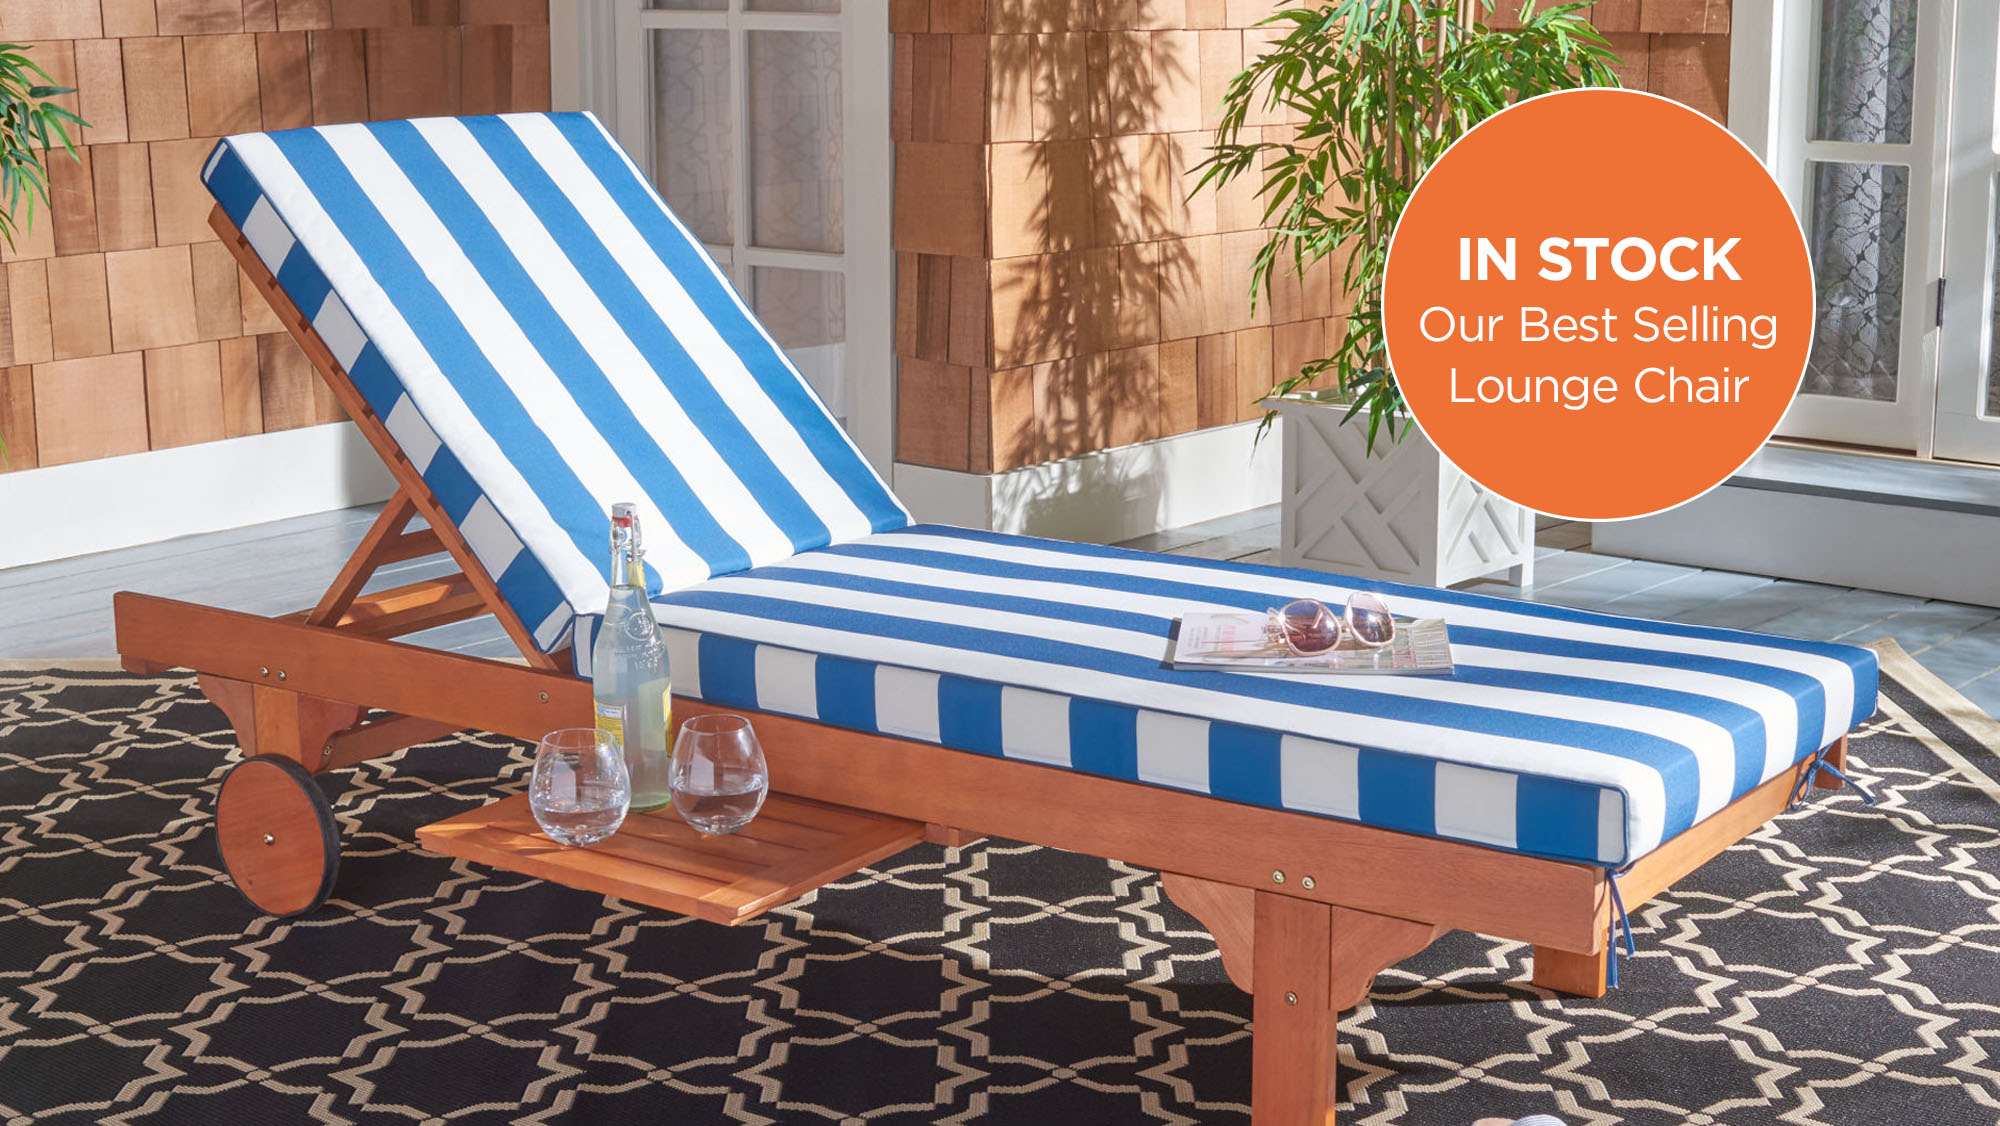 Save on our Best Selling Newport Lounge Chair